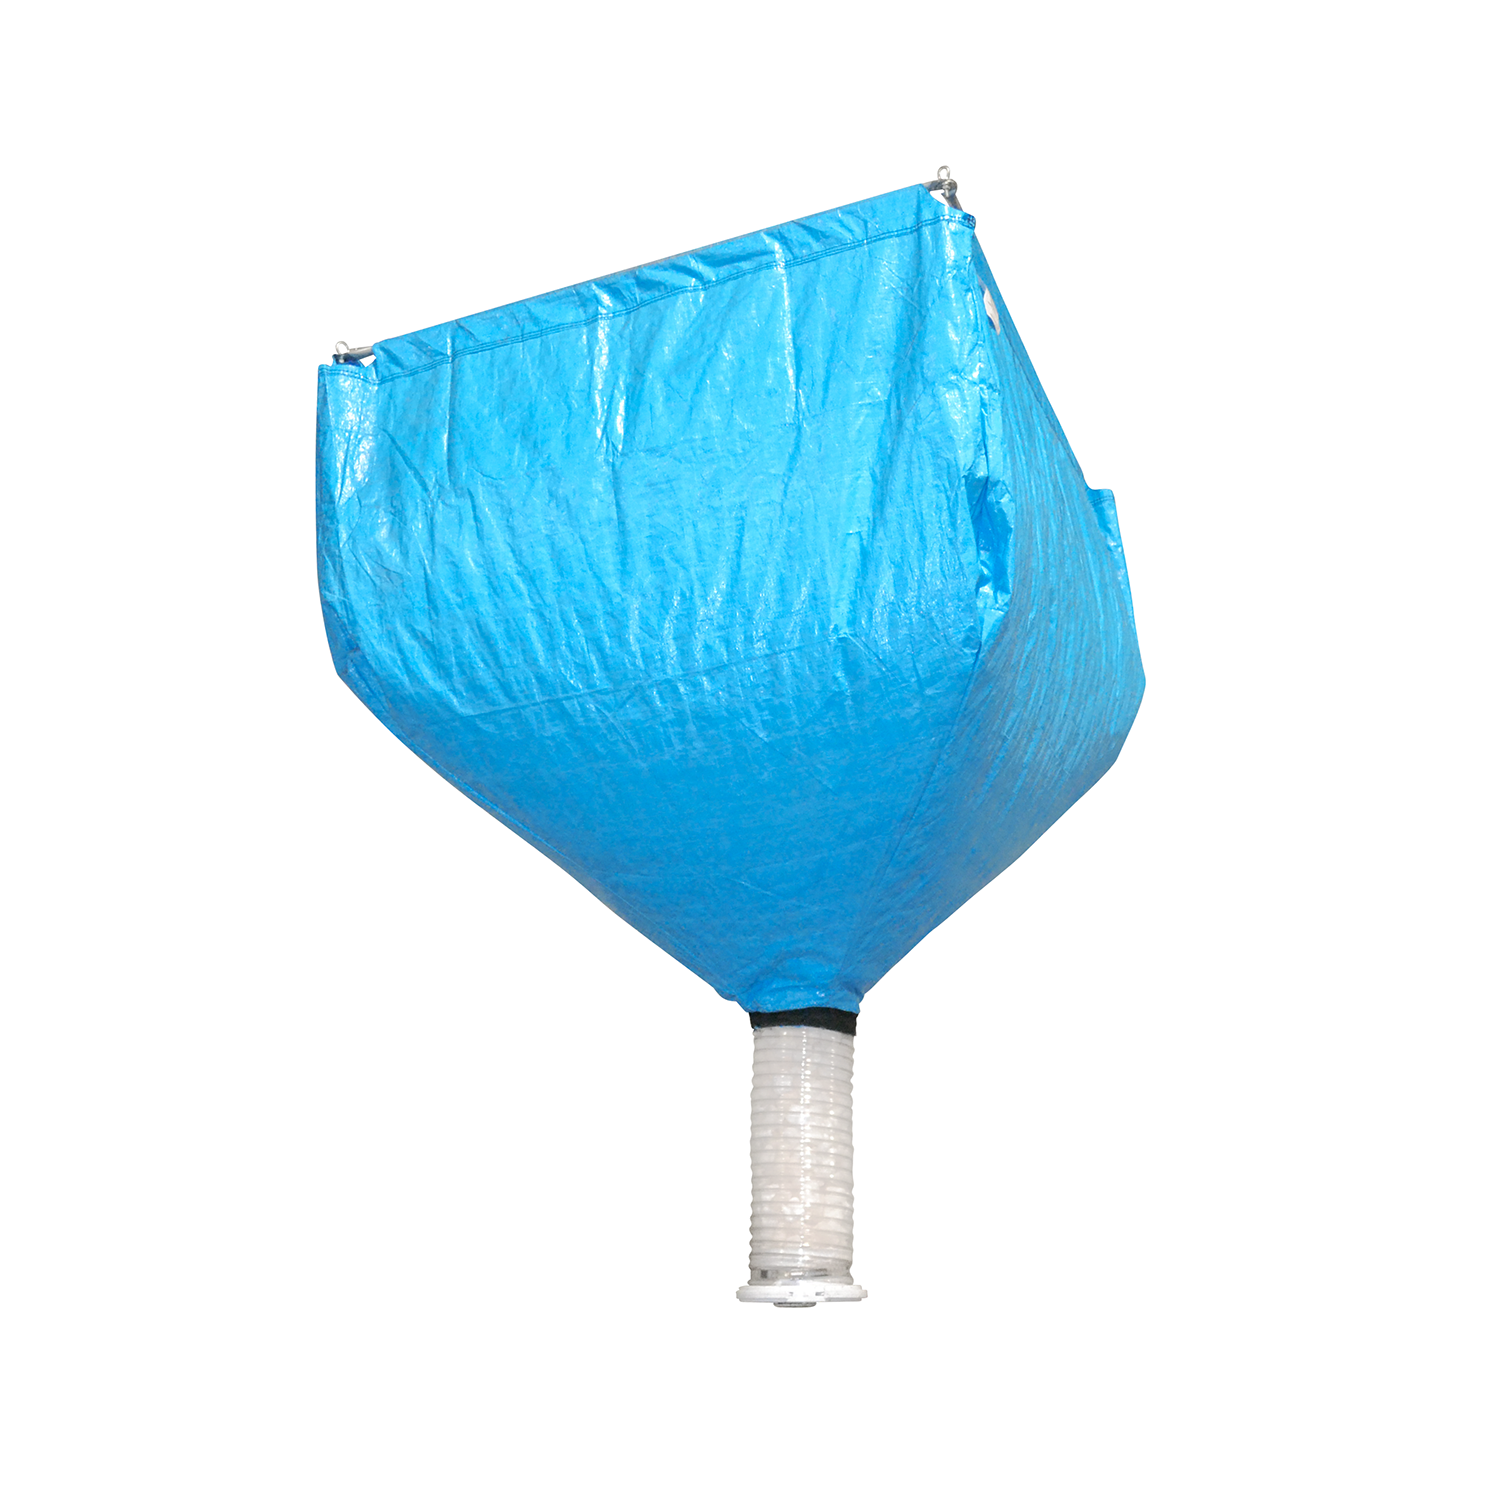 TOTALPACK® Loose Fill Dispenser